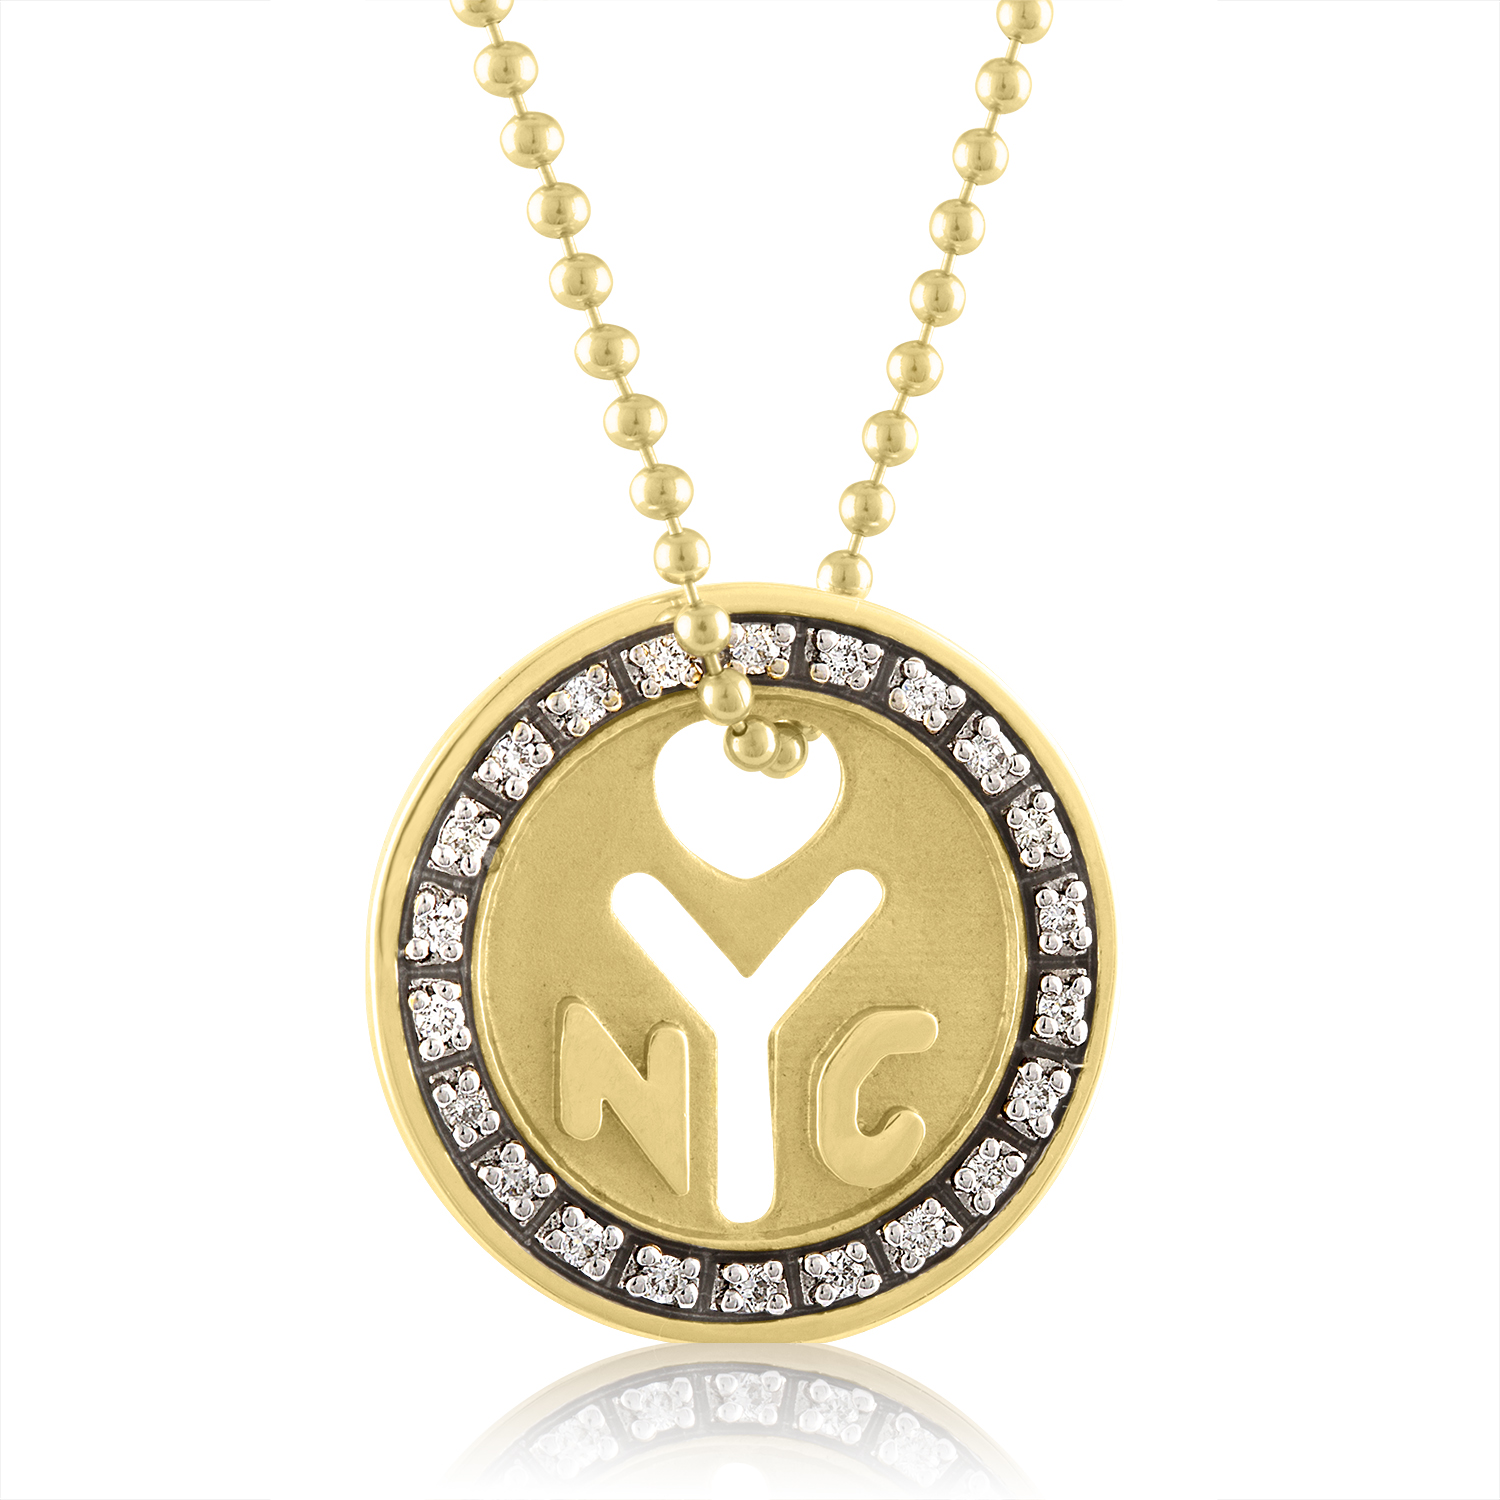 Julie Lamb NYC pendant